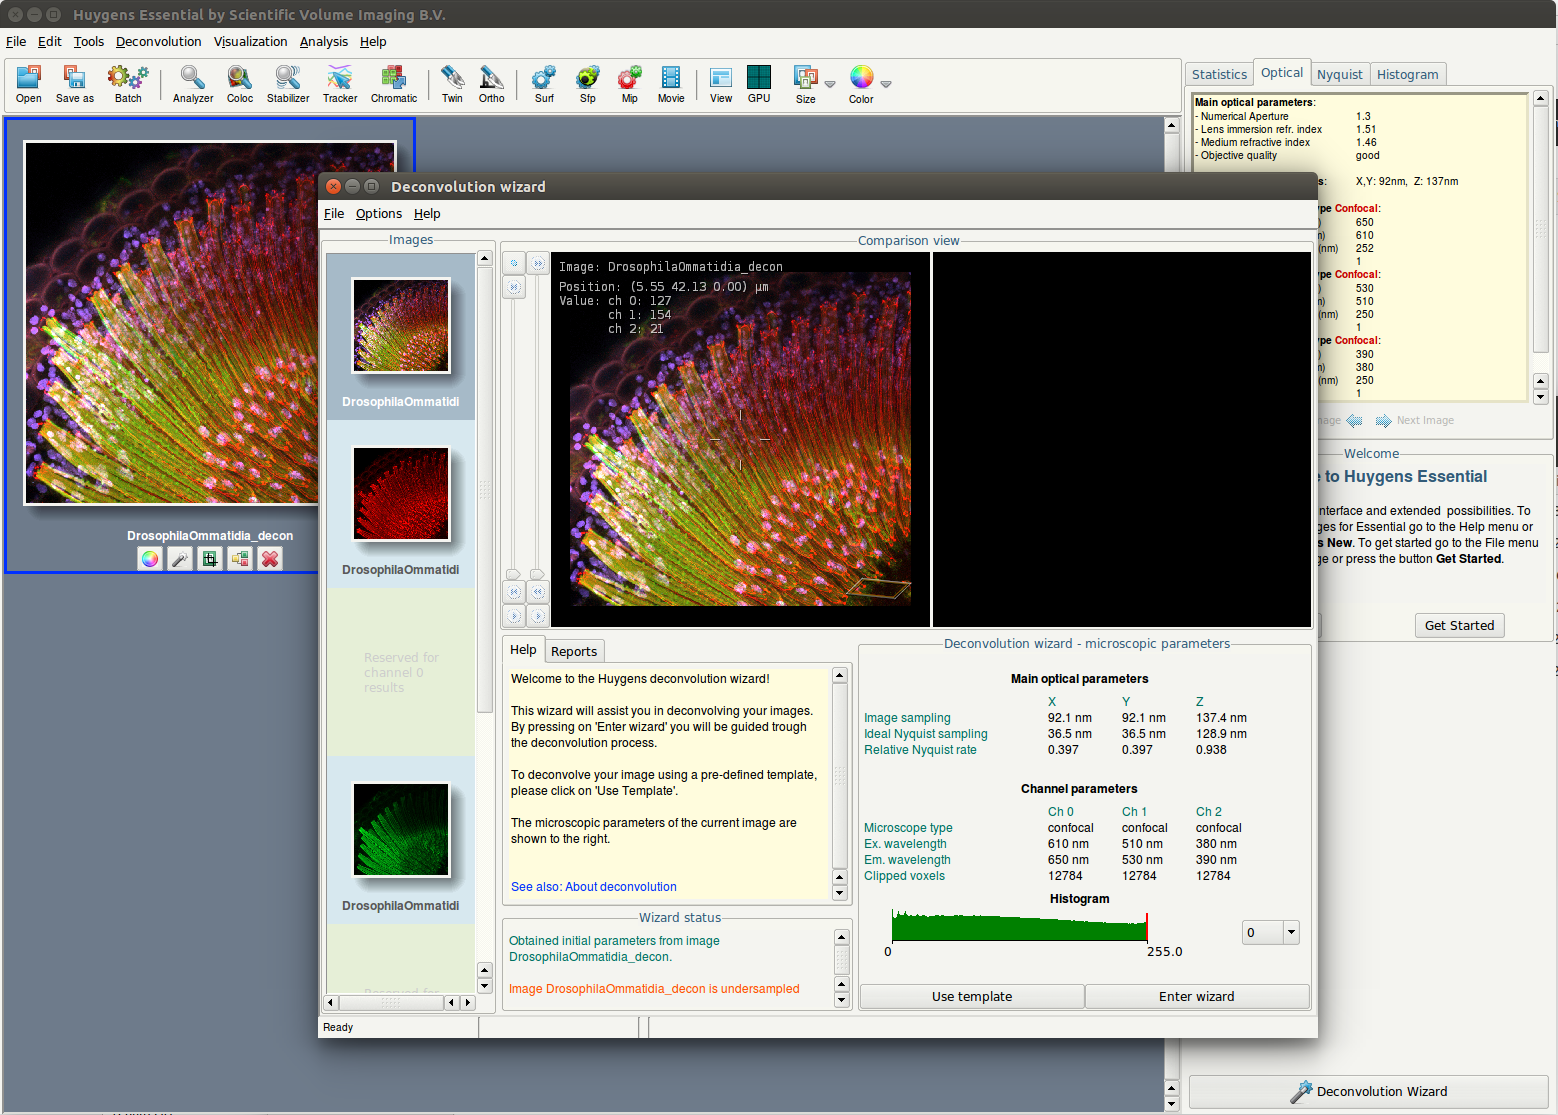 free image analysis software for microscopy